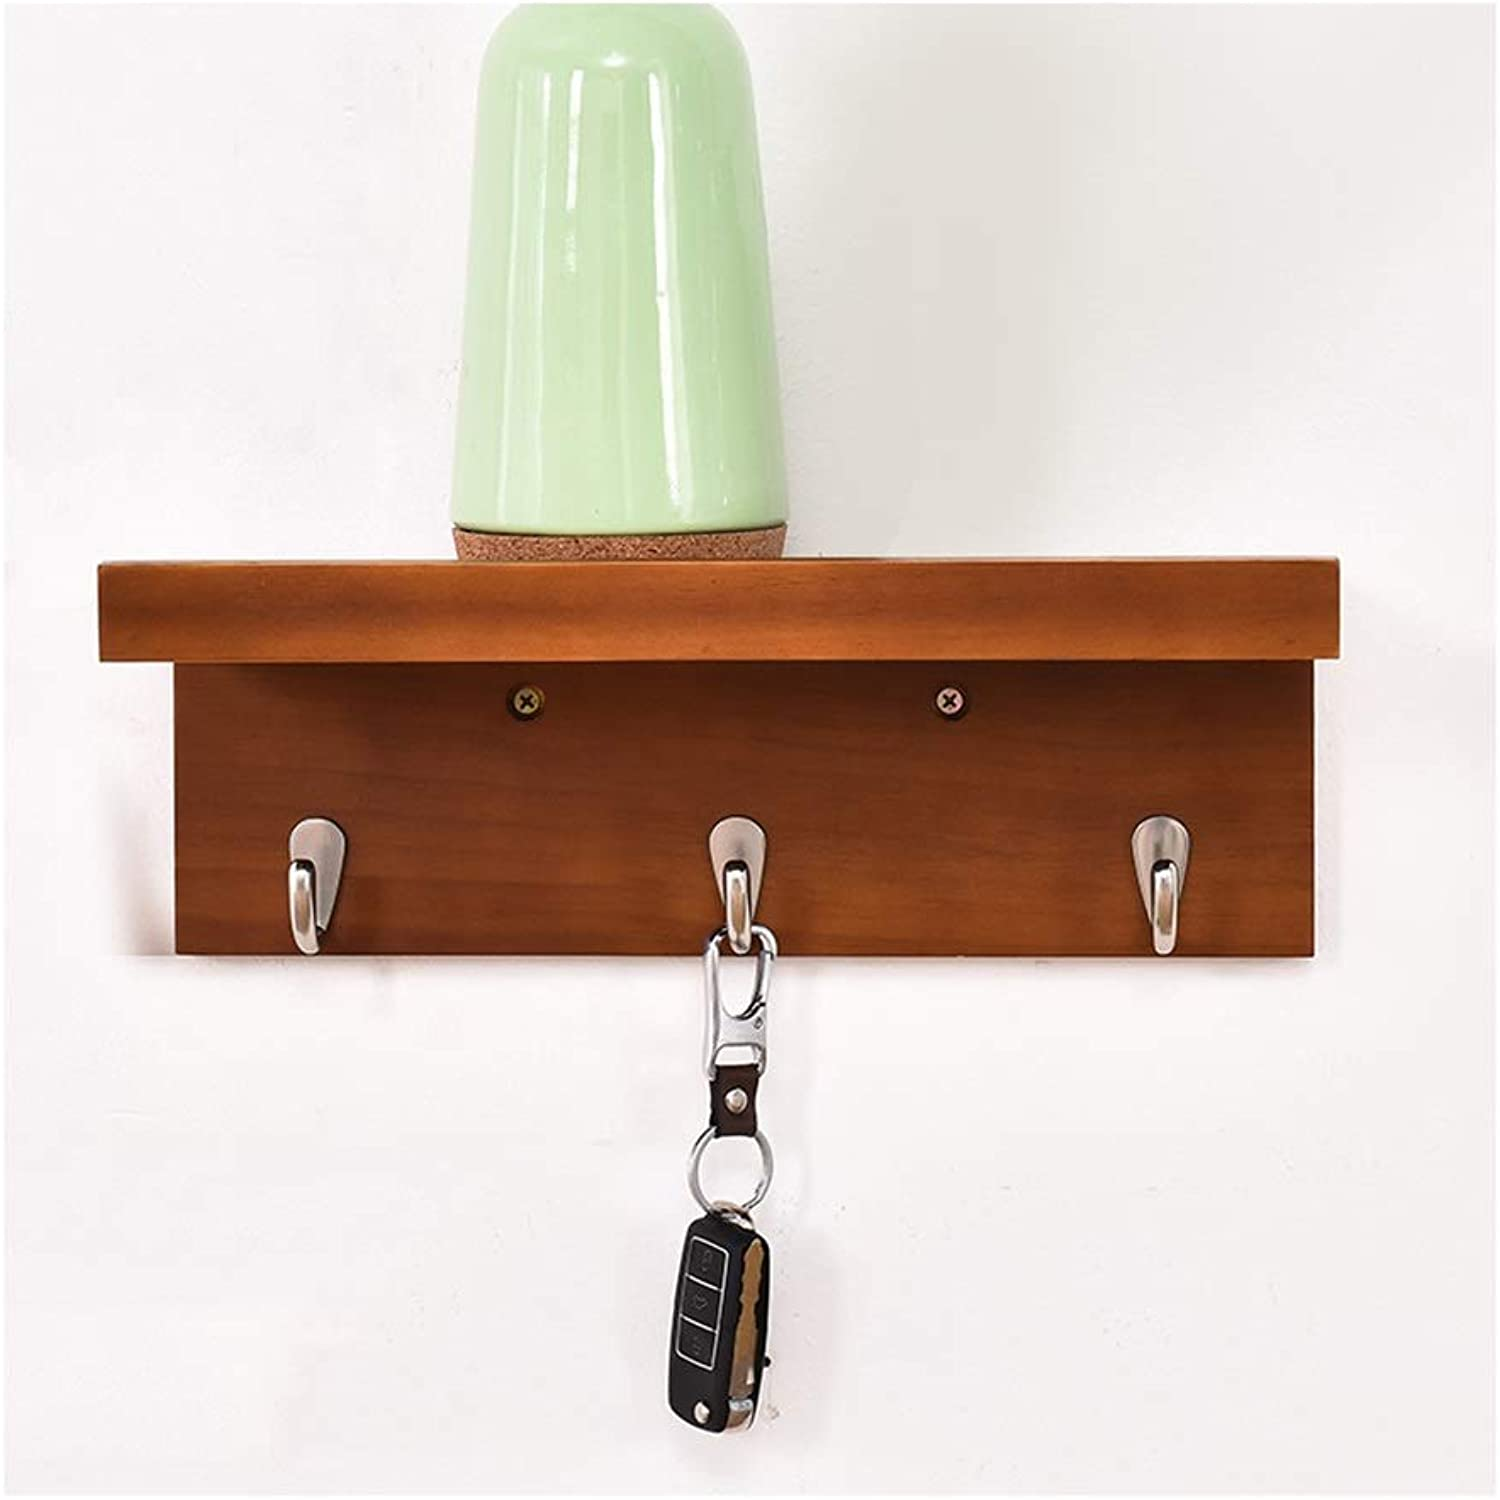 Coat Hanger Coat Rack Creative Solid Wood Coat Hooks With Storage Shelf Home Bedroom Living Room Porch Wall Mounted Clothes Hook (Size   3 hooks)